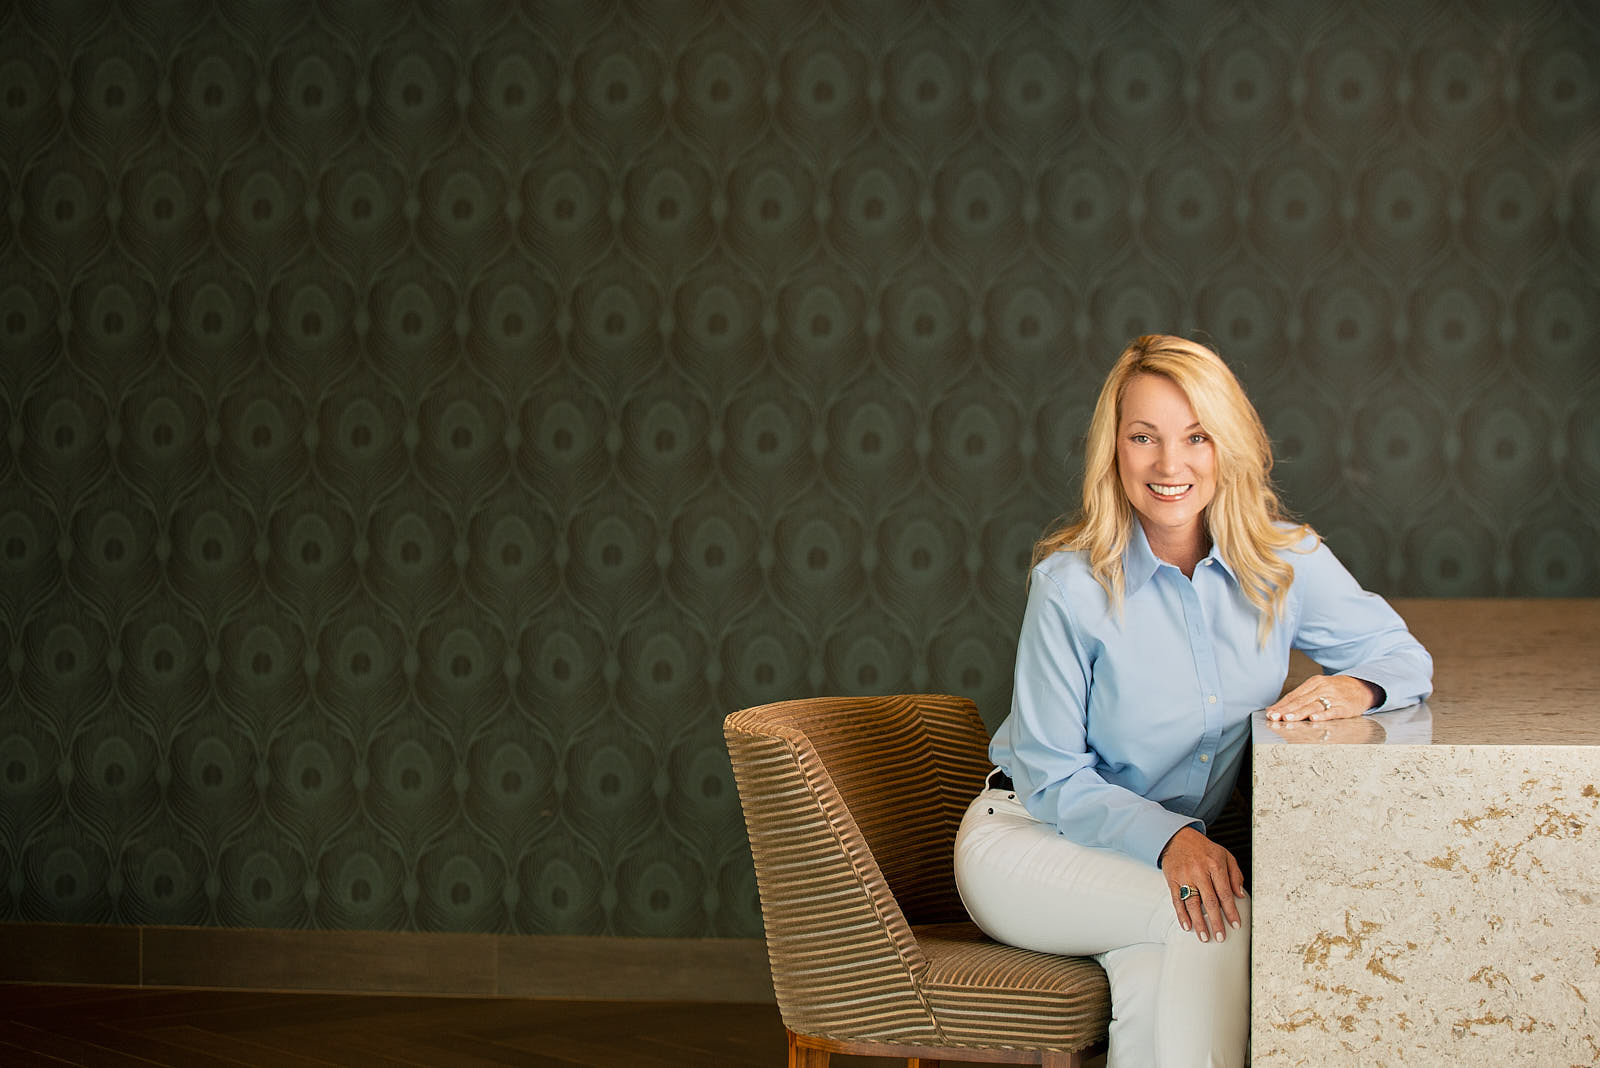 nashville-realtor-headshot-photographer